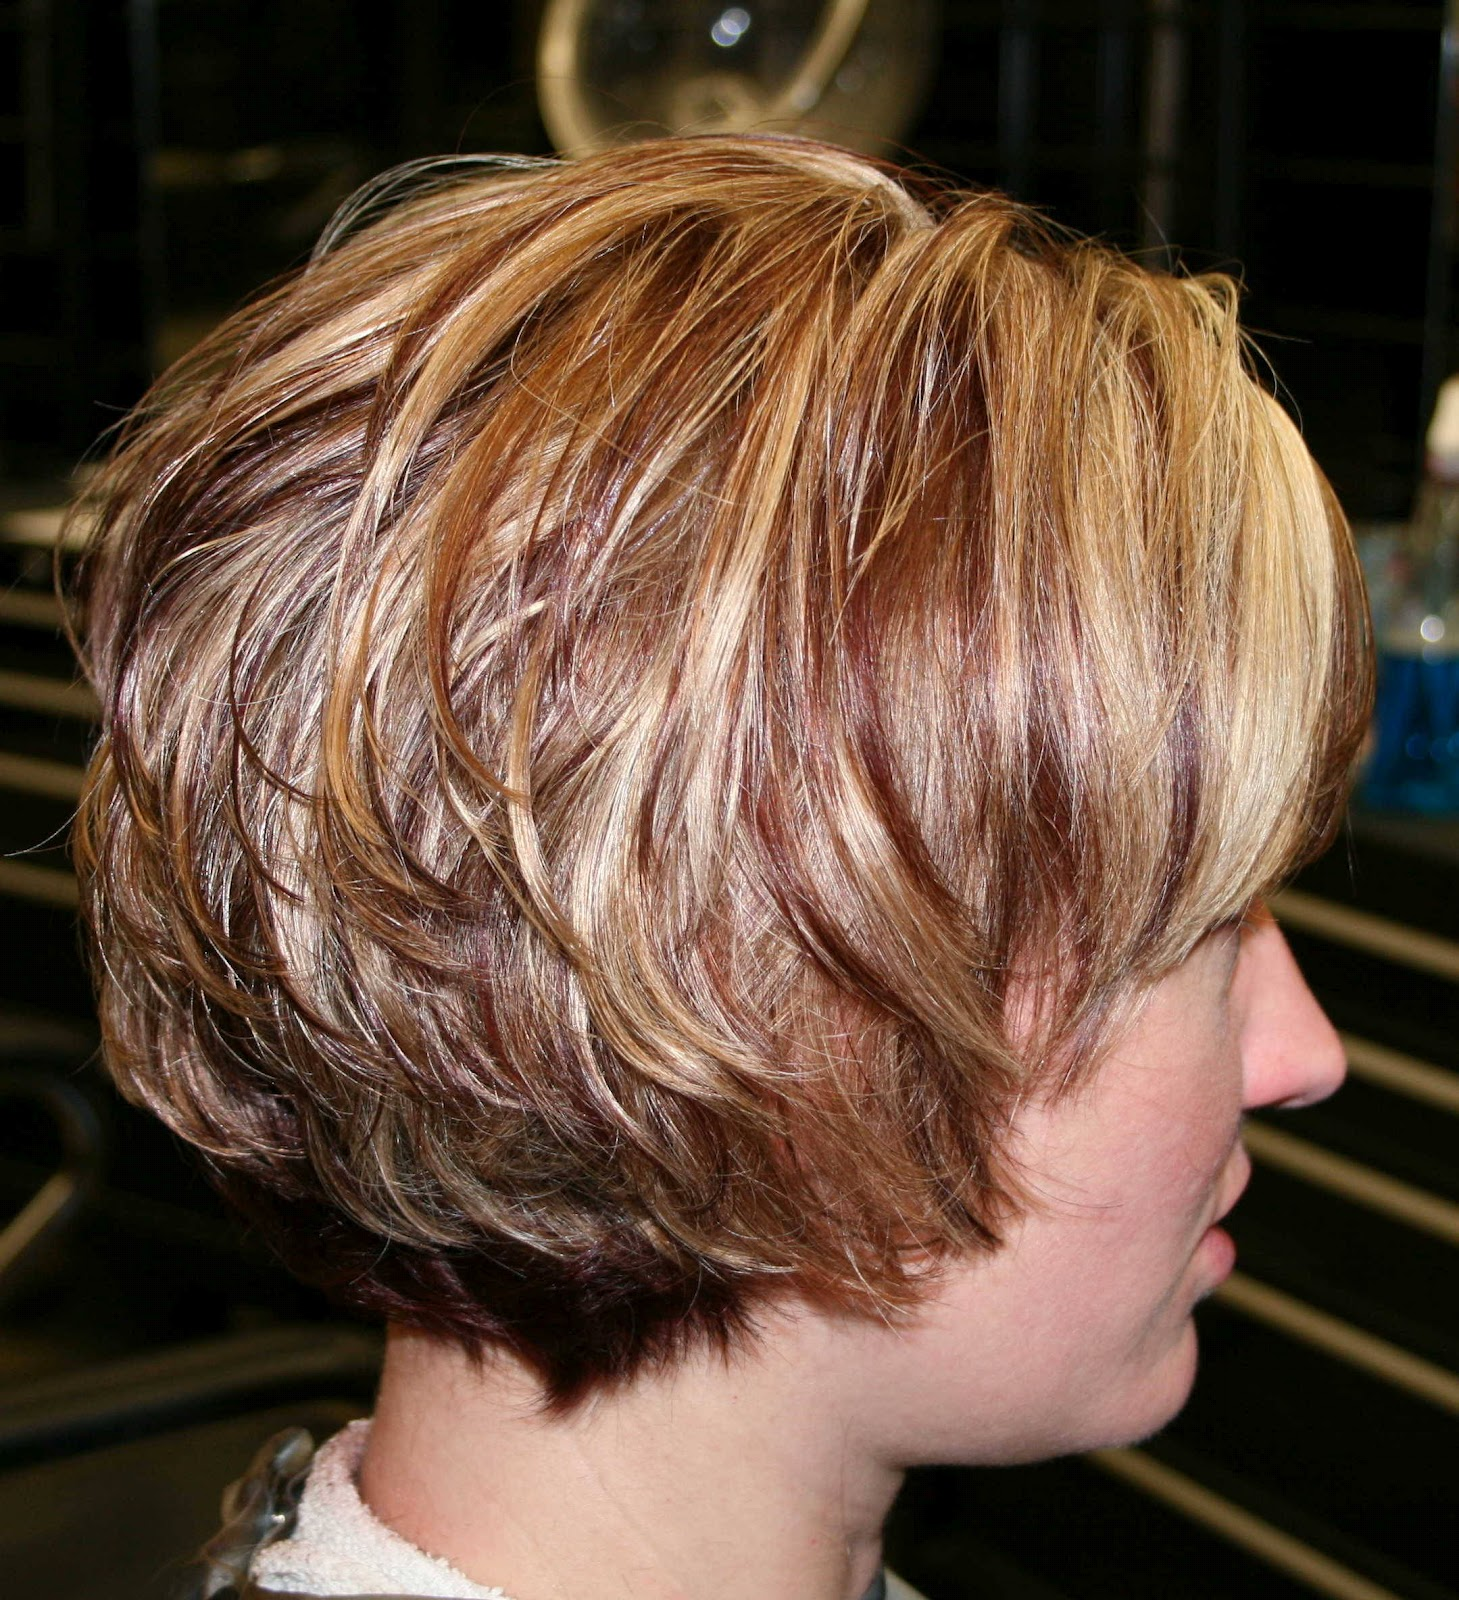 Latest Hair Styles: Short Haircuts For 2012, Angled And